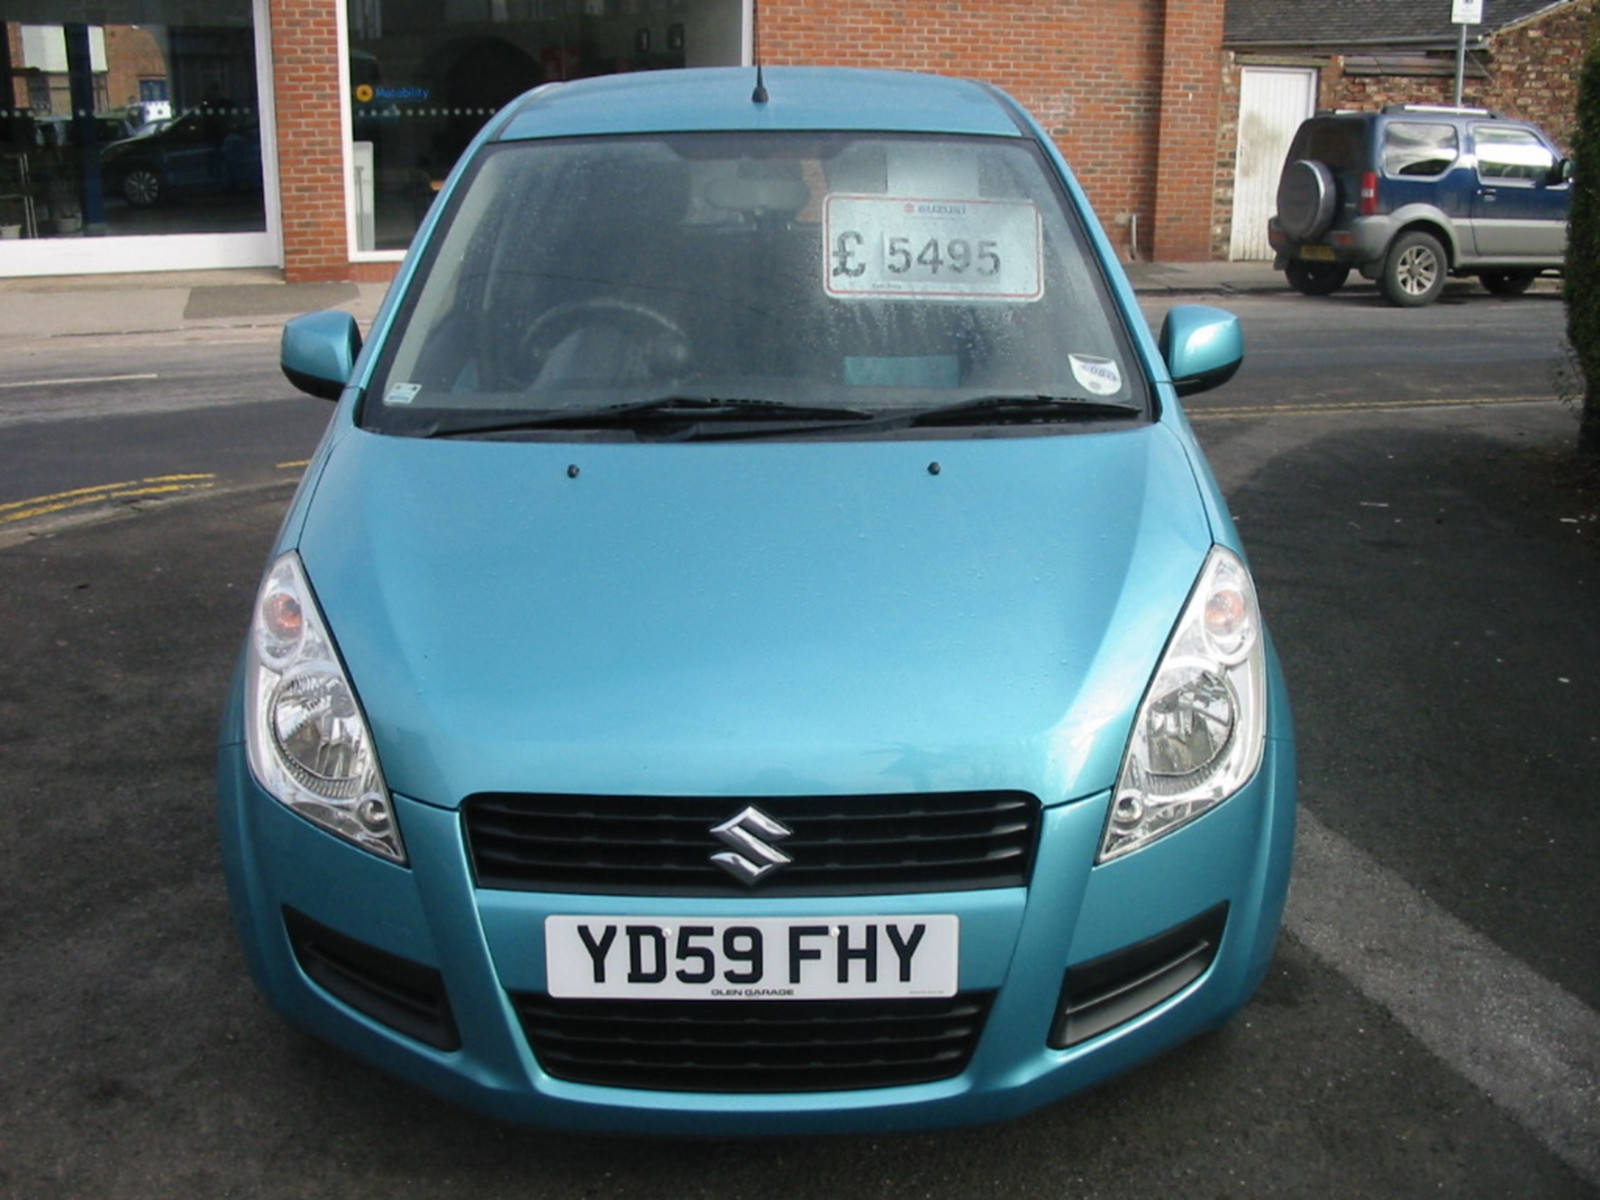 Suzuki Splash 1.2 GLS Hatchback Petrol Turquoise